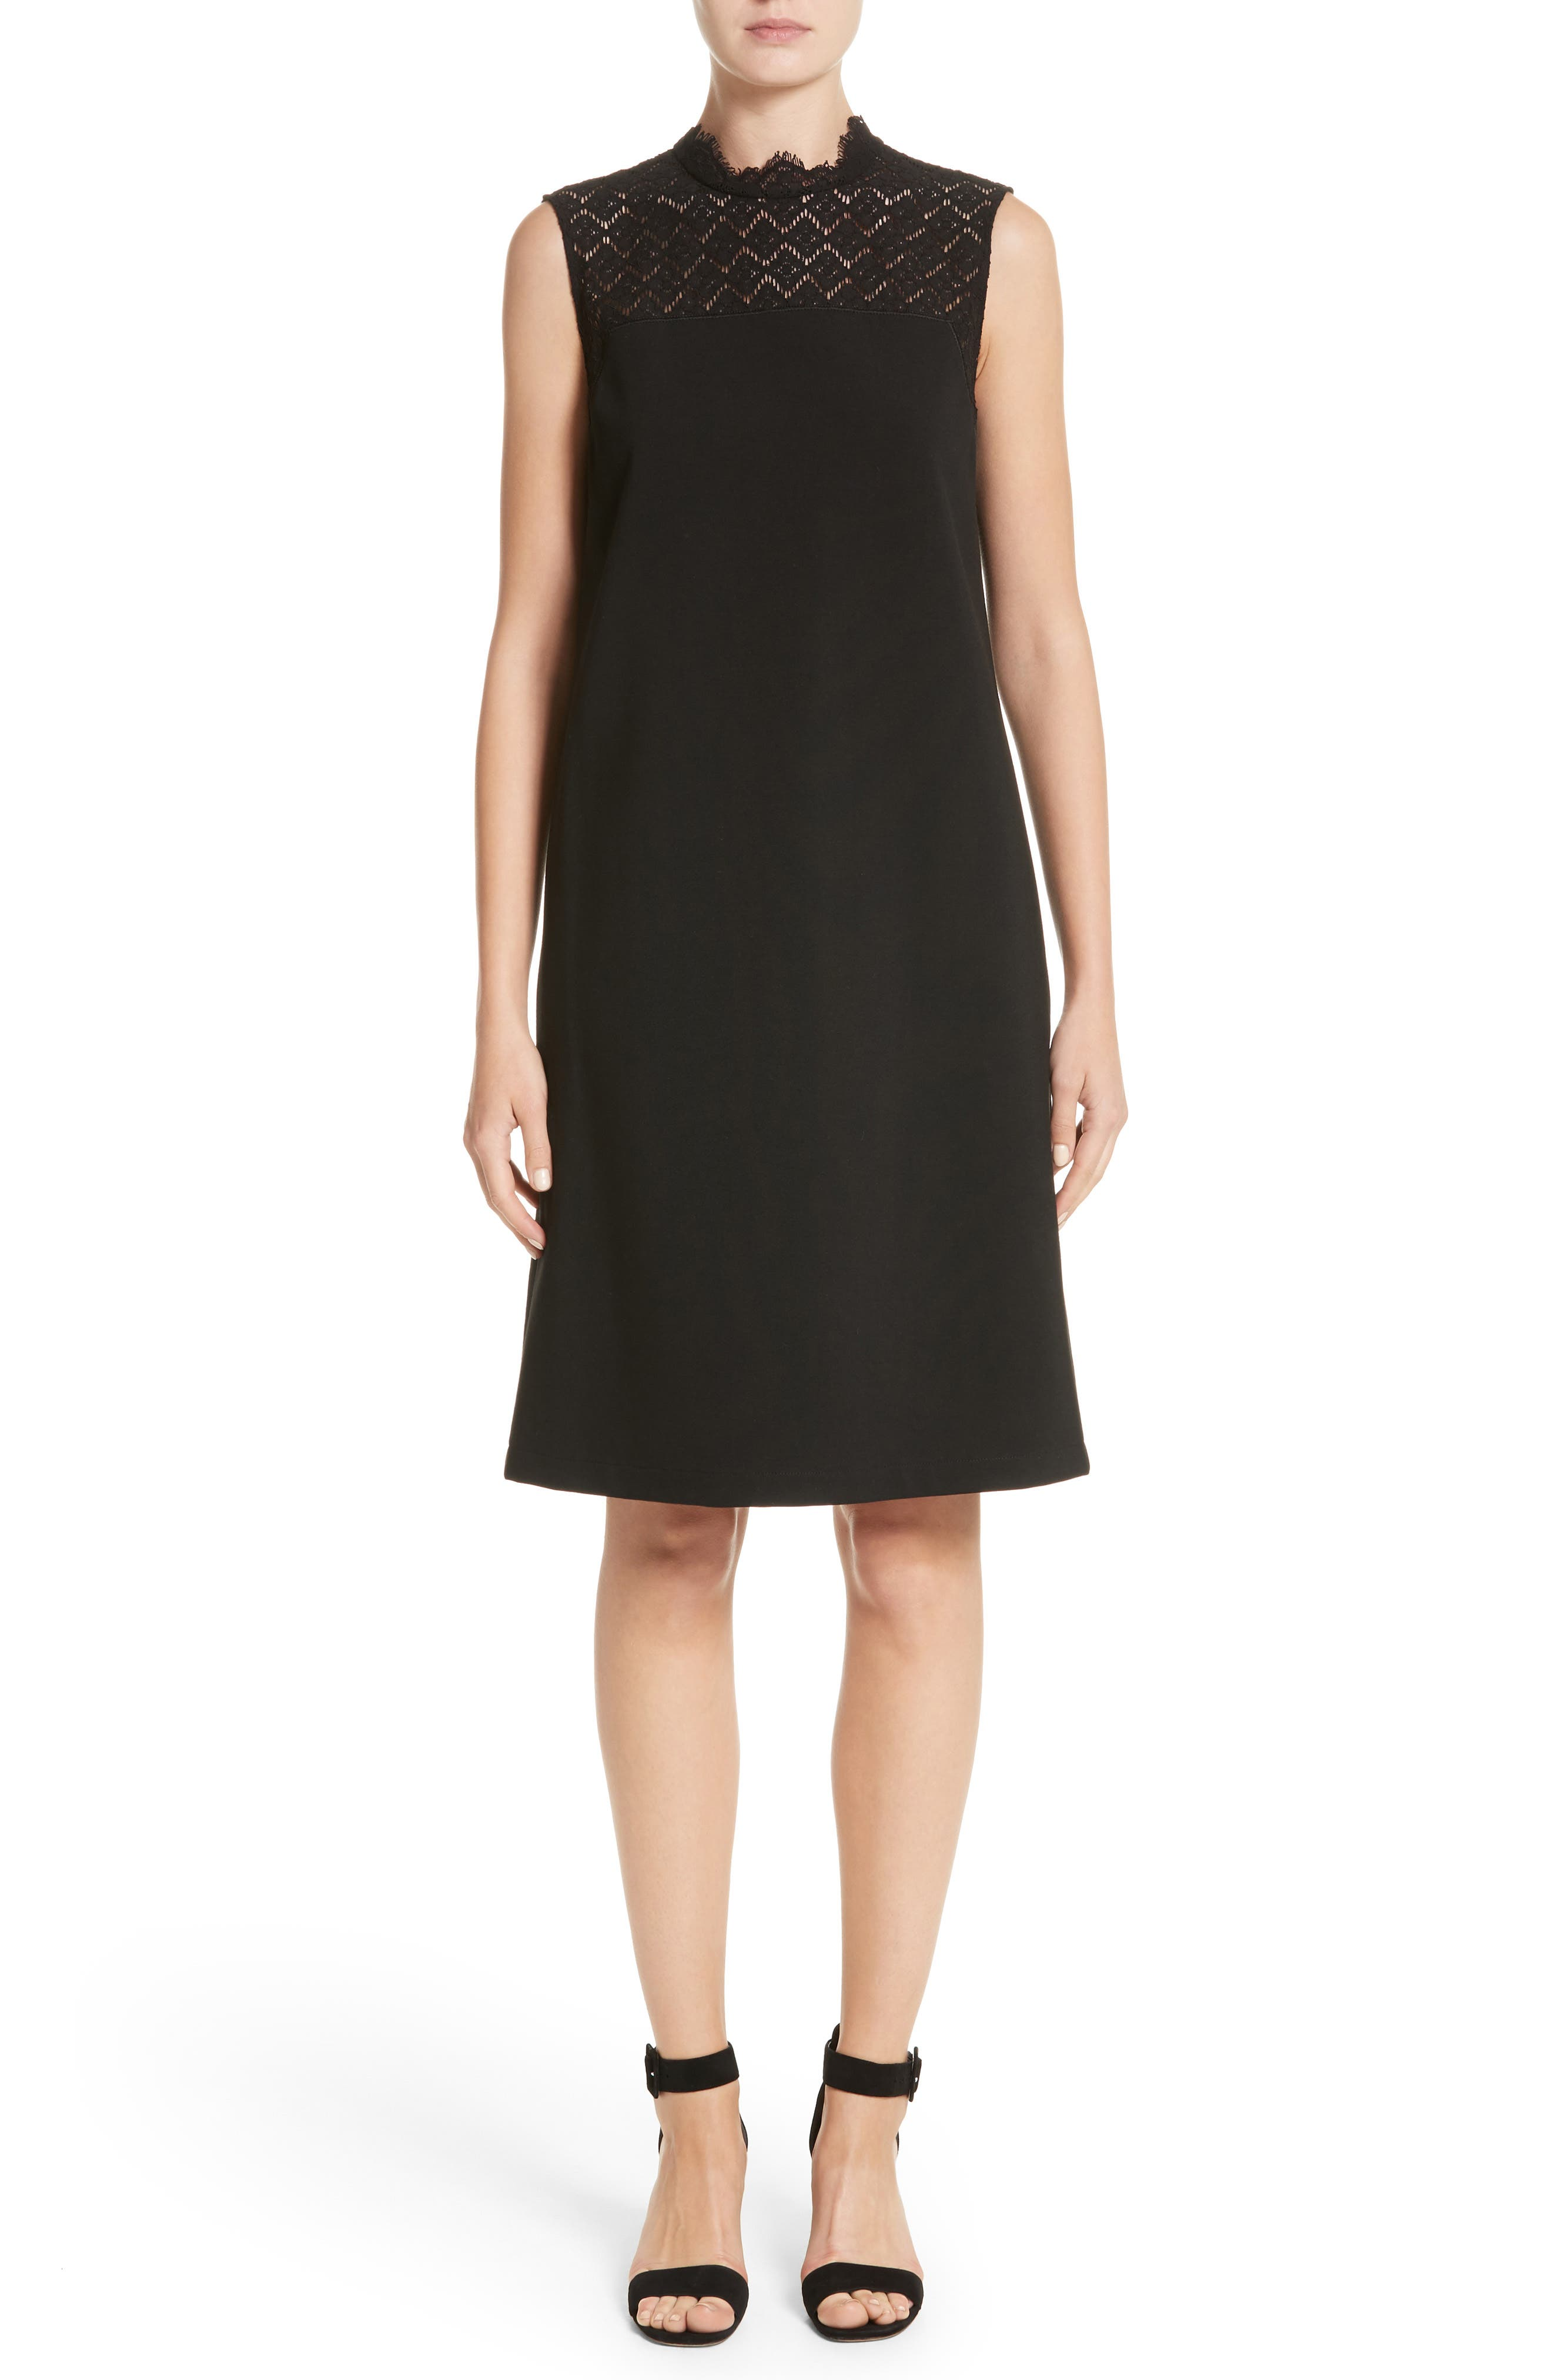 Alternate Image 1 Selected - Lafayette 148 New York Ines Lace Trim Shift Dress